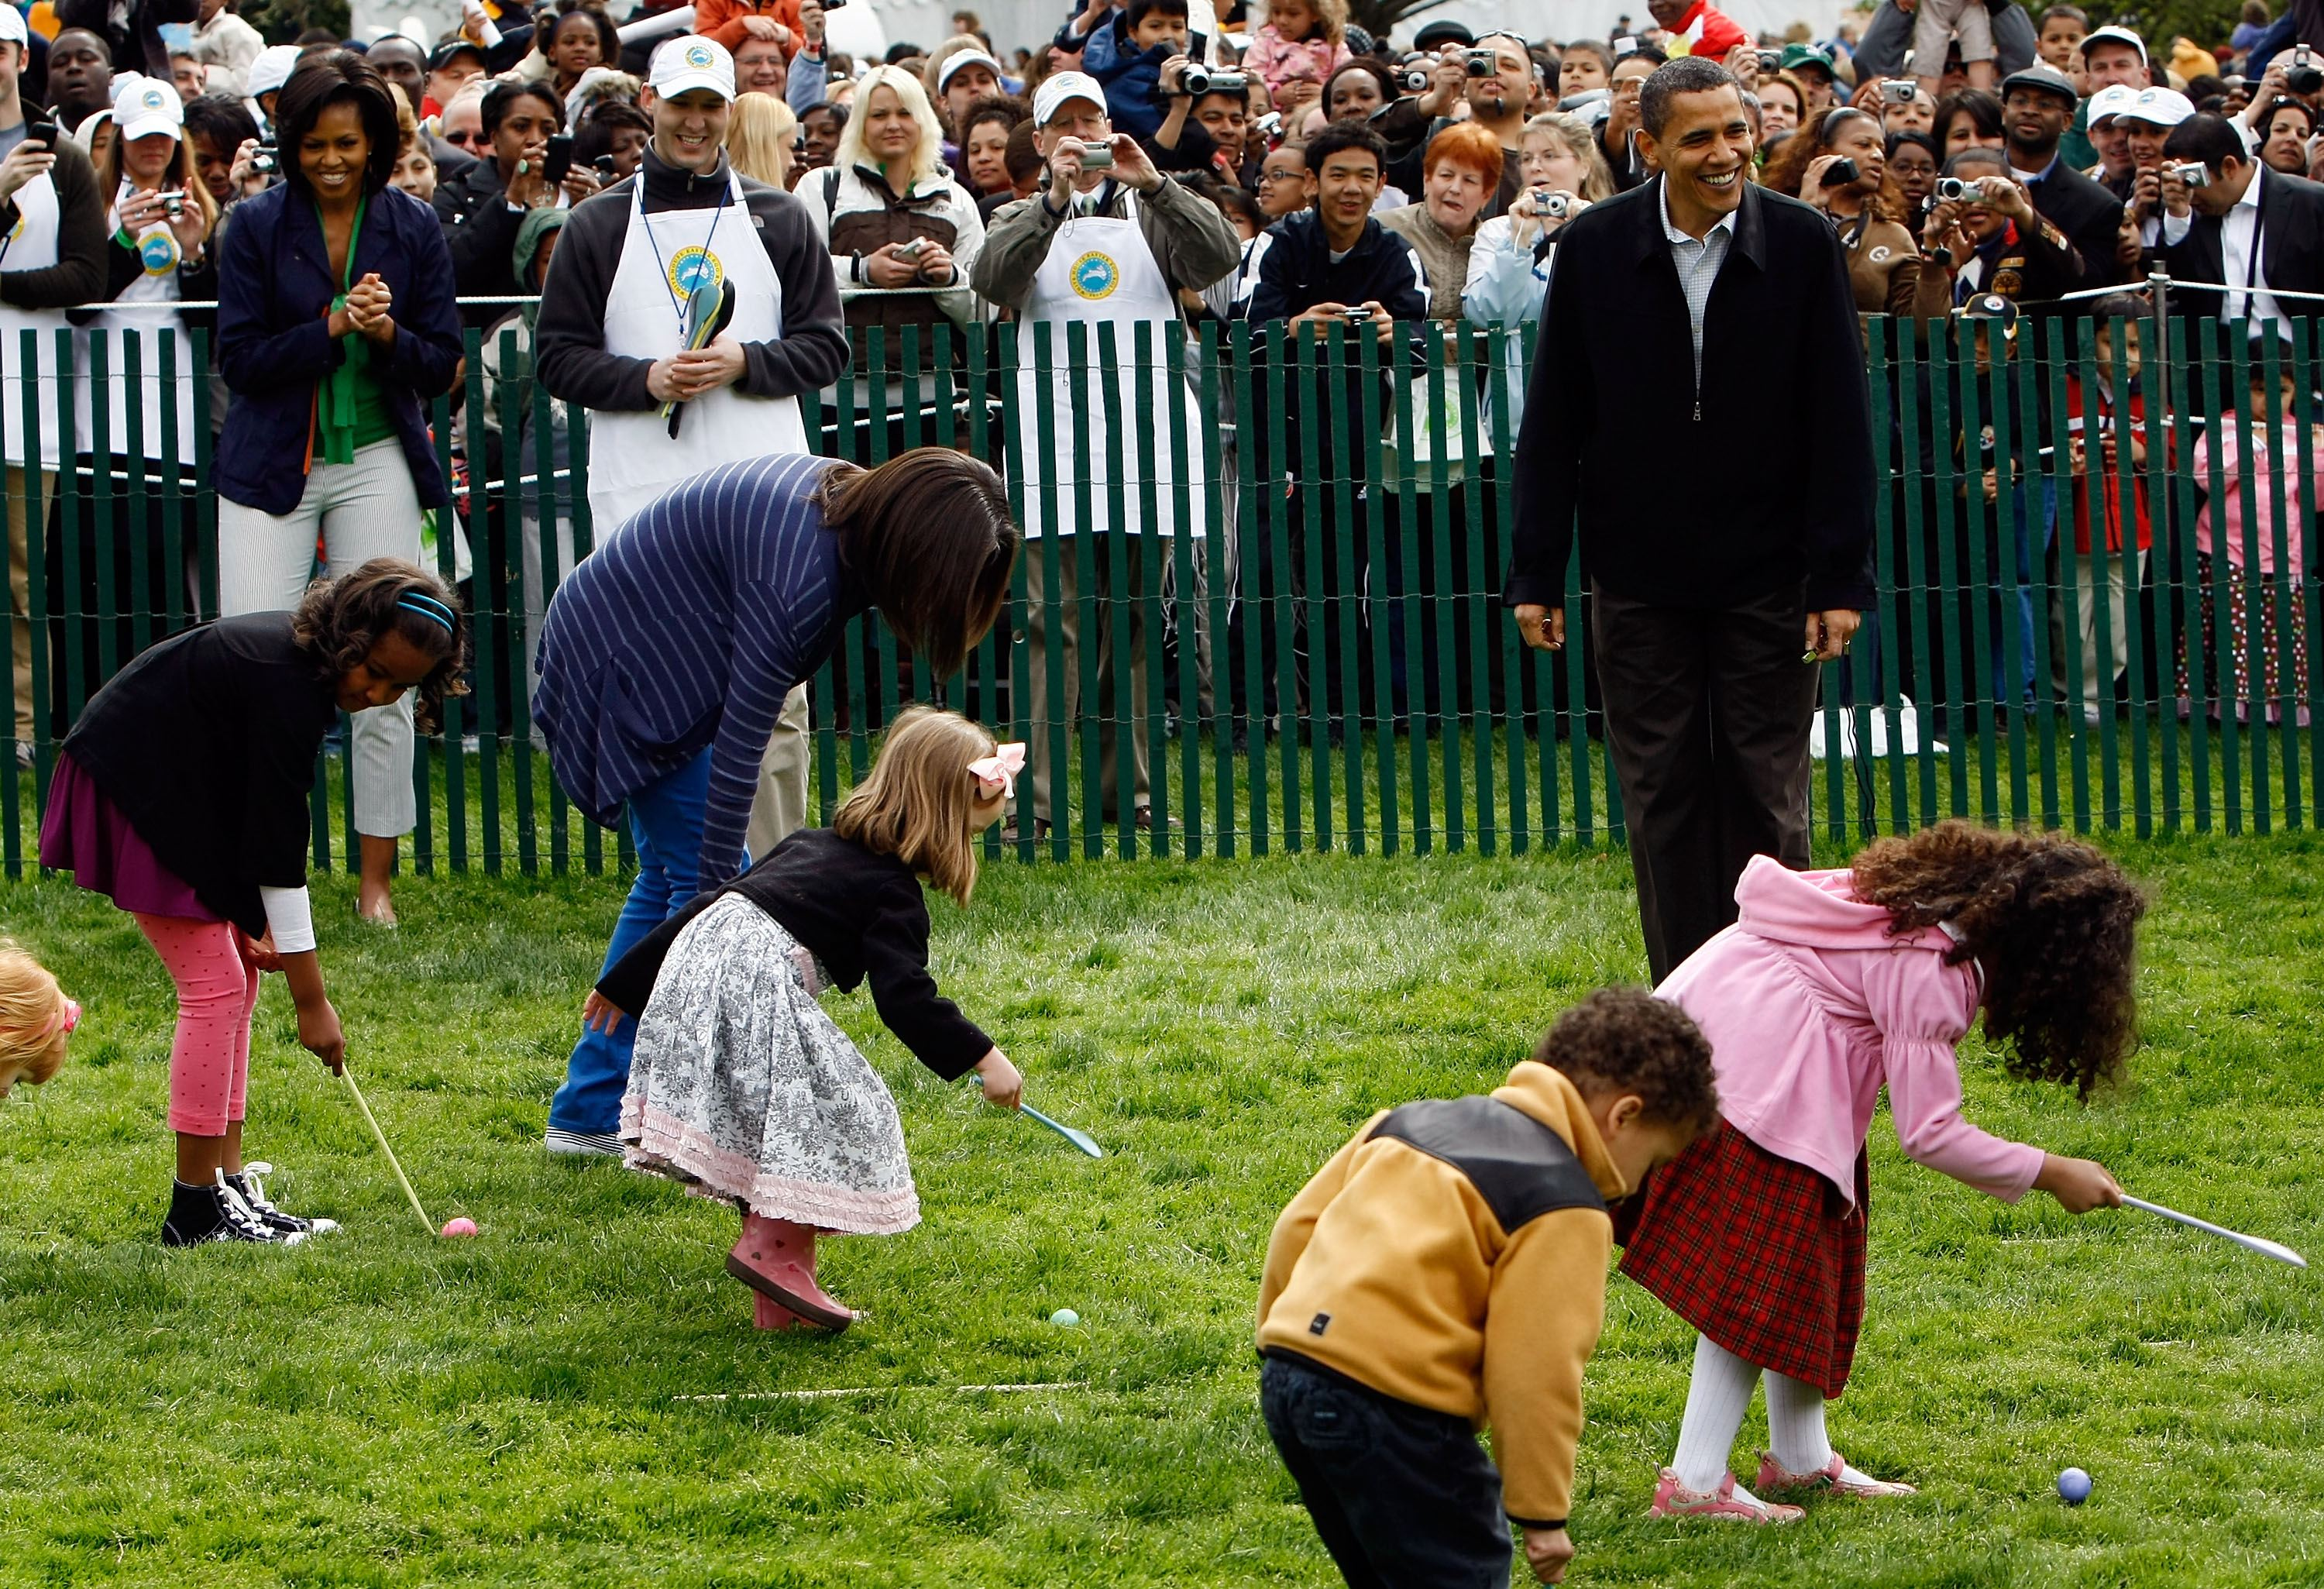 Barack Obama watched children participating in the Annual Easter Egg Roll